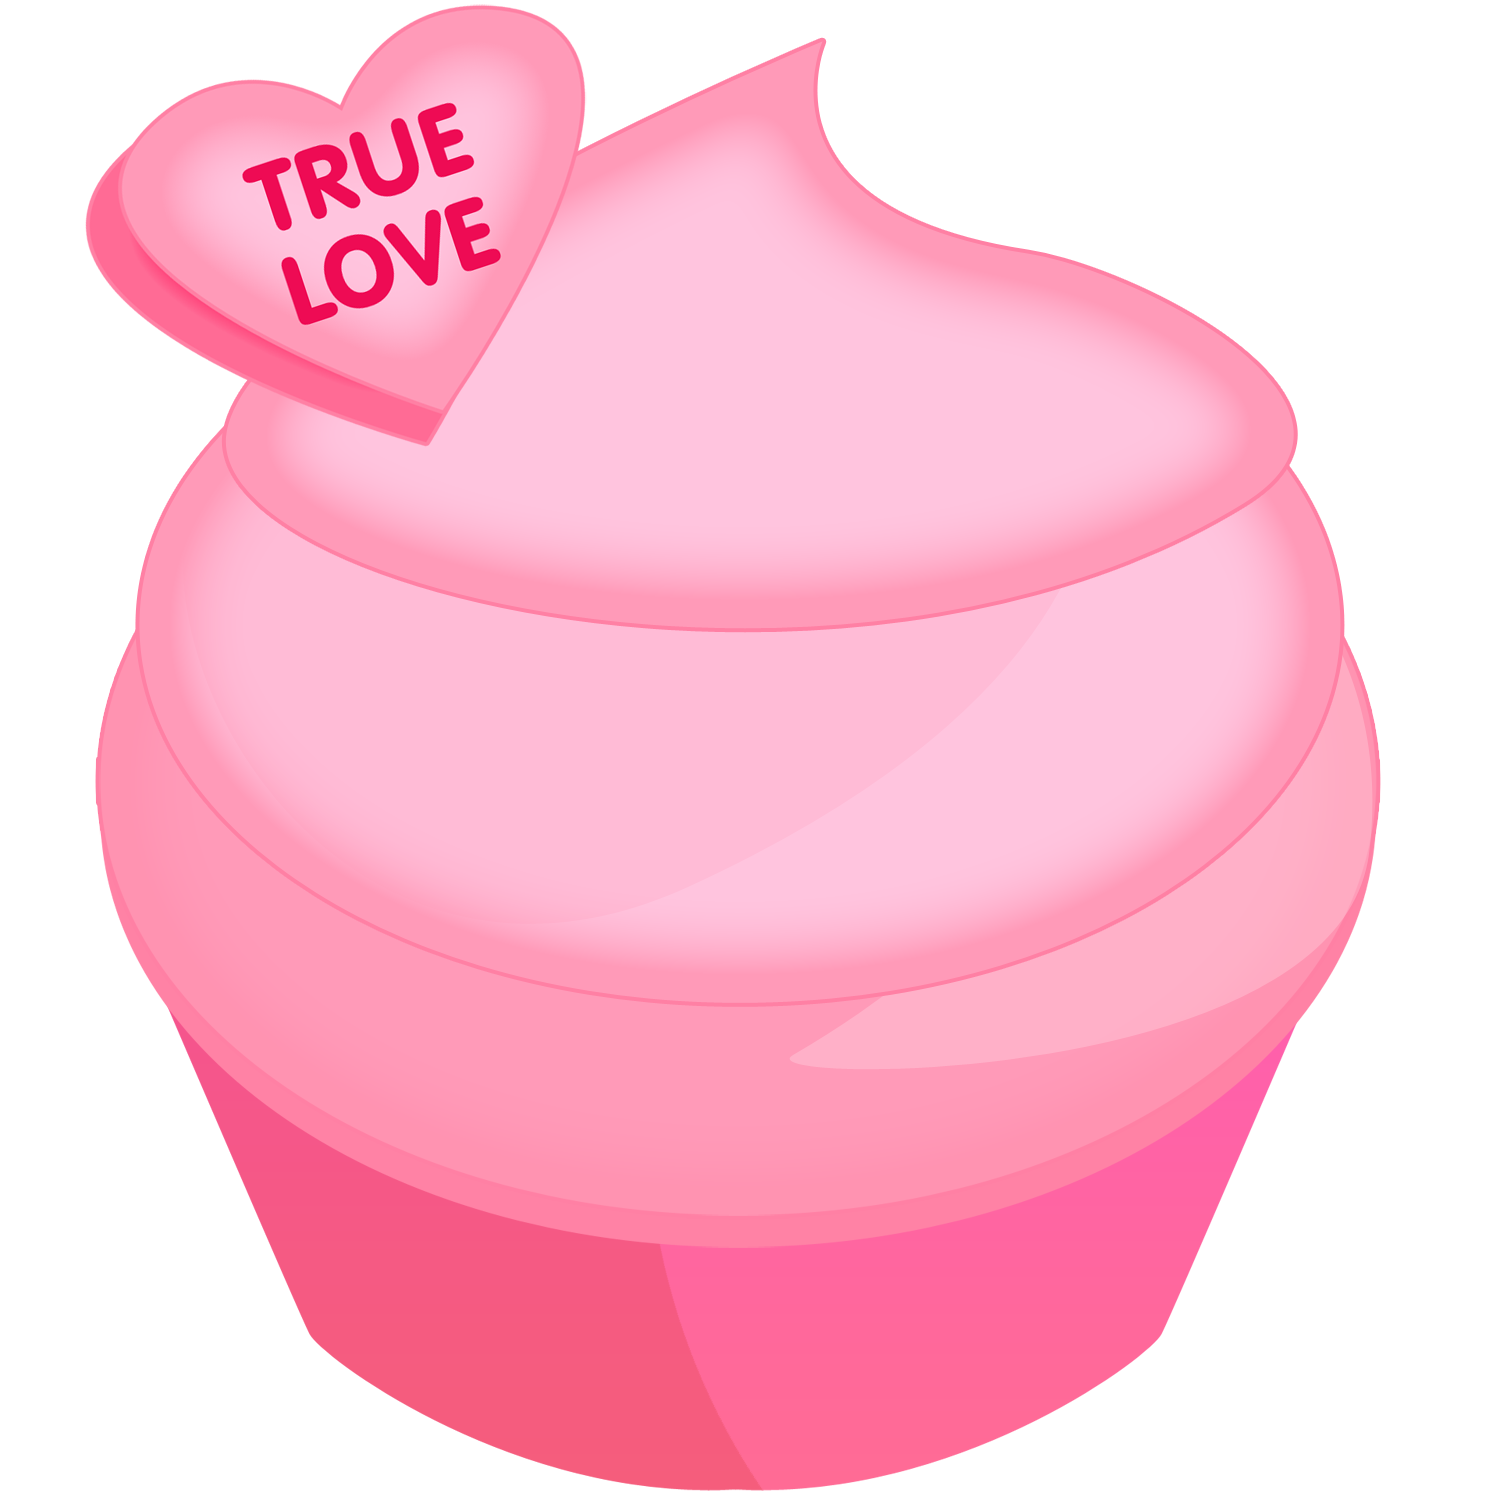 Valentine day bakery clipart png jpg library download Free Valentine Cake Cliparts, Download Free Clip Art, Free ... jpg library download